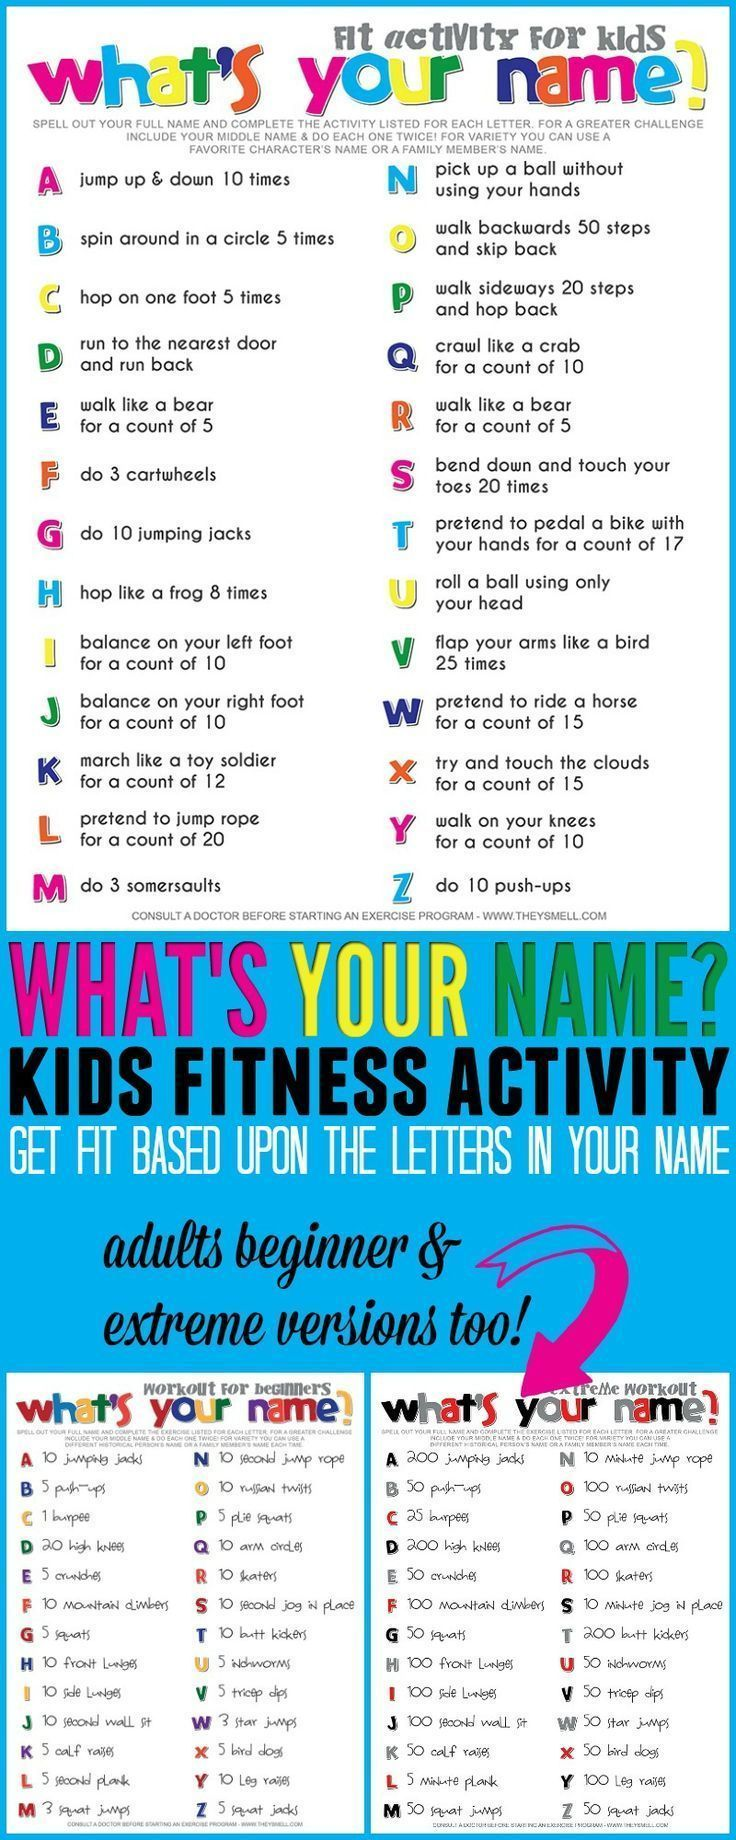 #printable #realizing #activity #workout #fitness #without #spell #whats #into #make #when #will #yo...